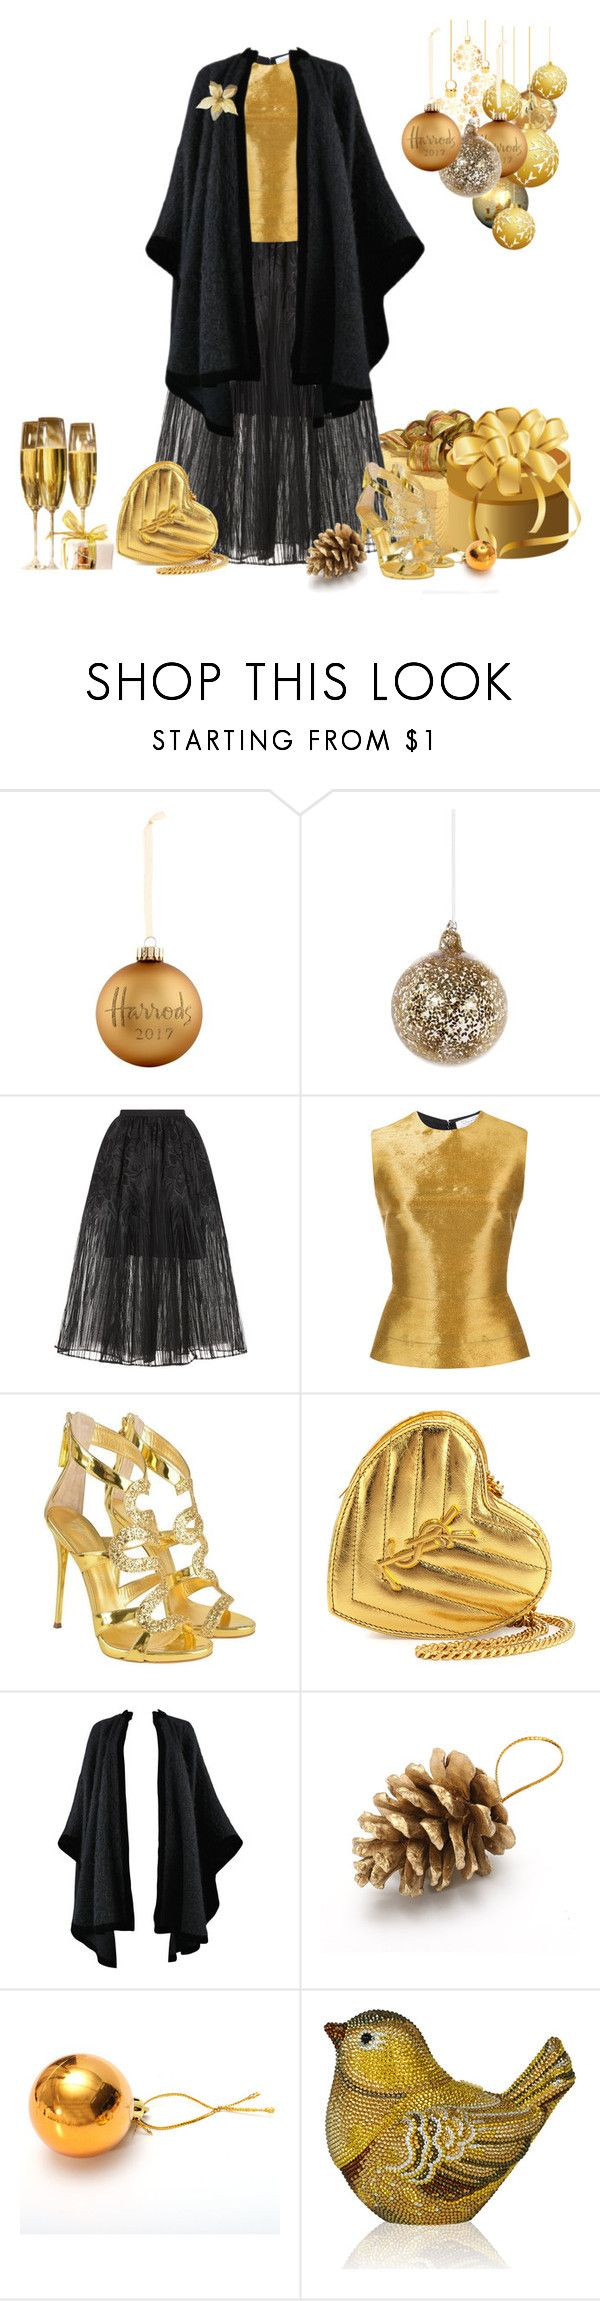 """""""Christmas lunch outfit."""" by cardigurl ❤ liked on Polyvore featuring Harrods, Shishi, Elie Saab, Oscar de la Renta, Giuseppe Zanotti, Yves Saint Laurent and Judith Leiber"""